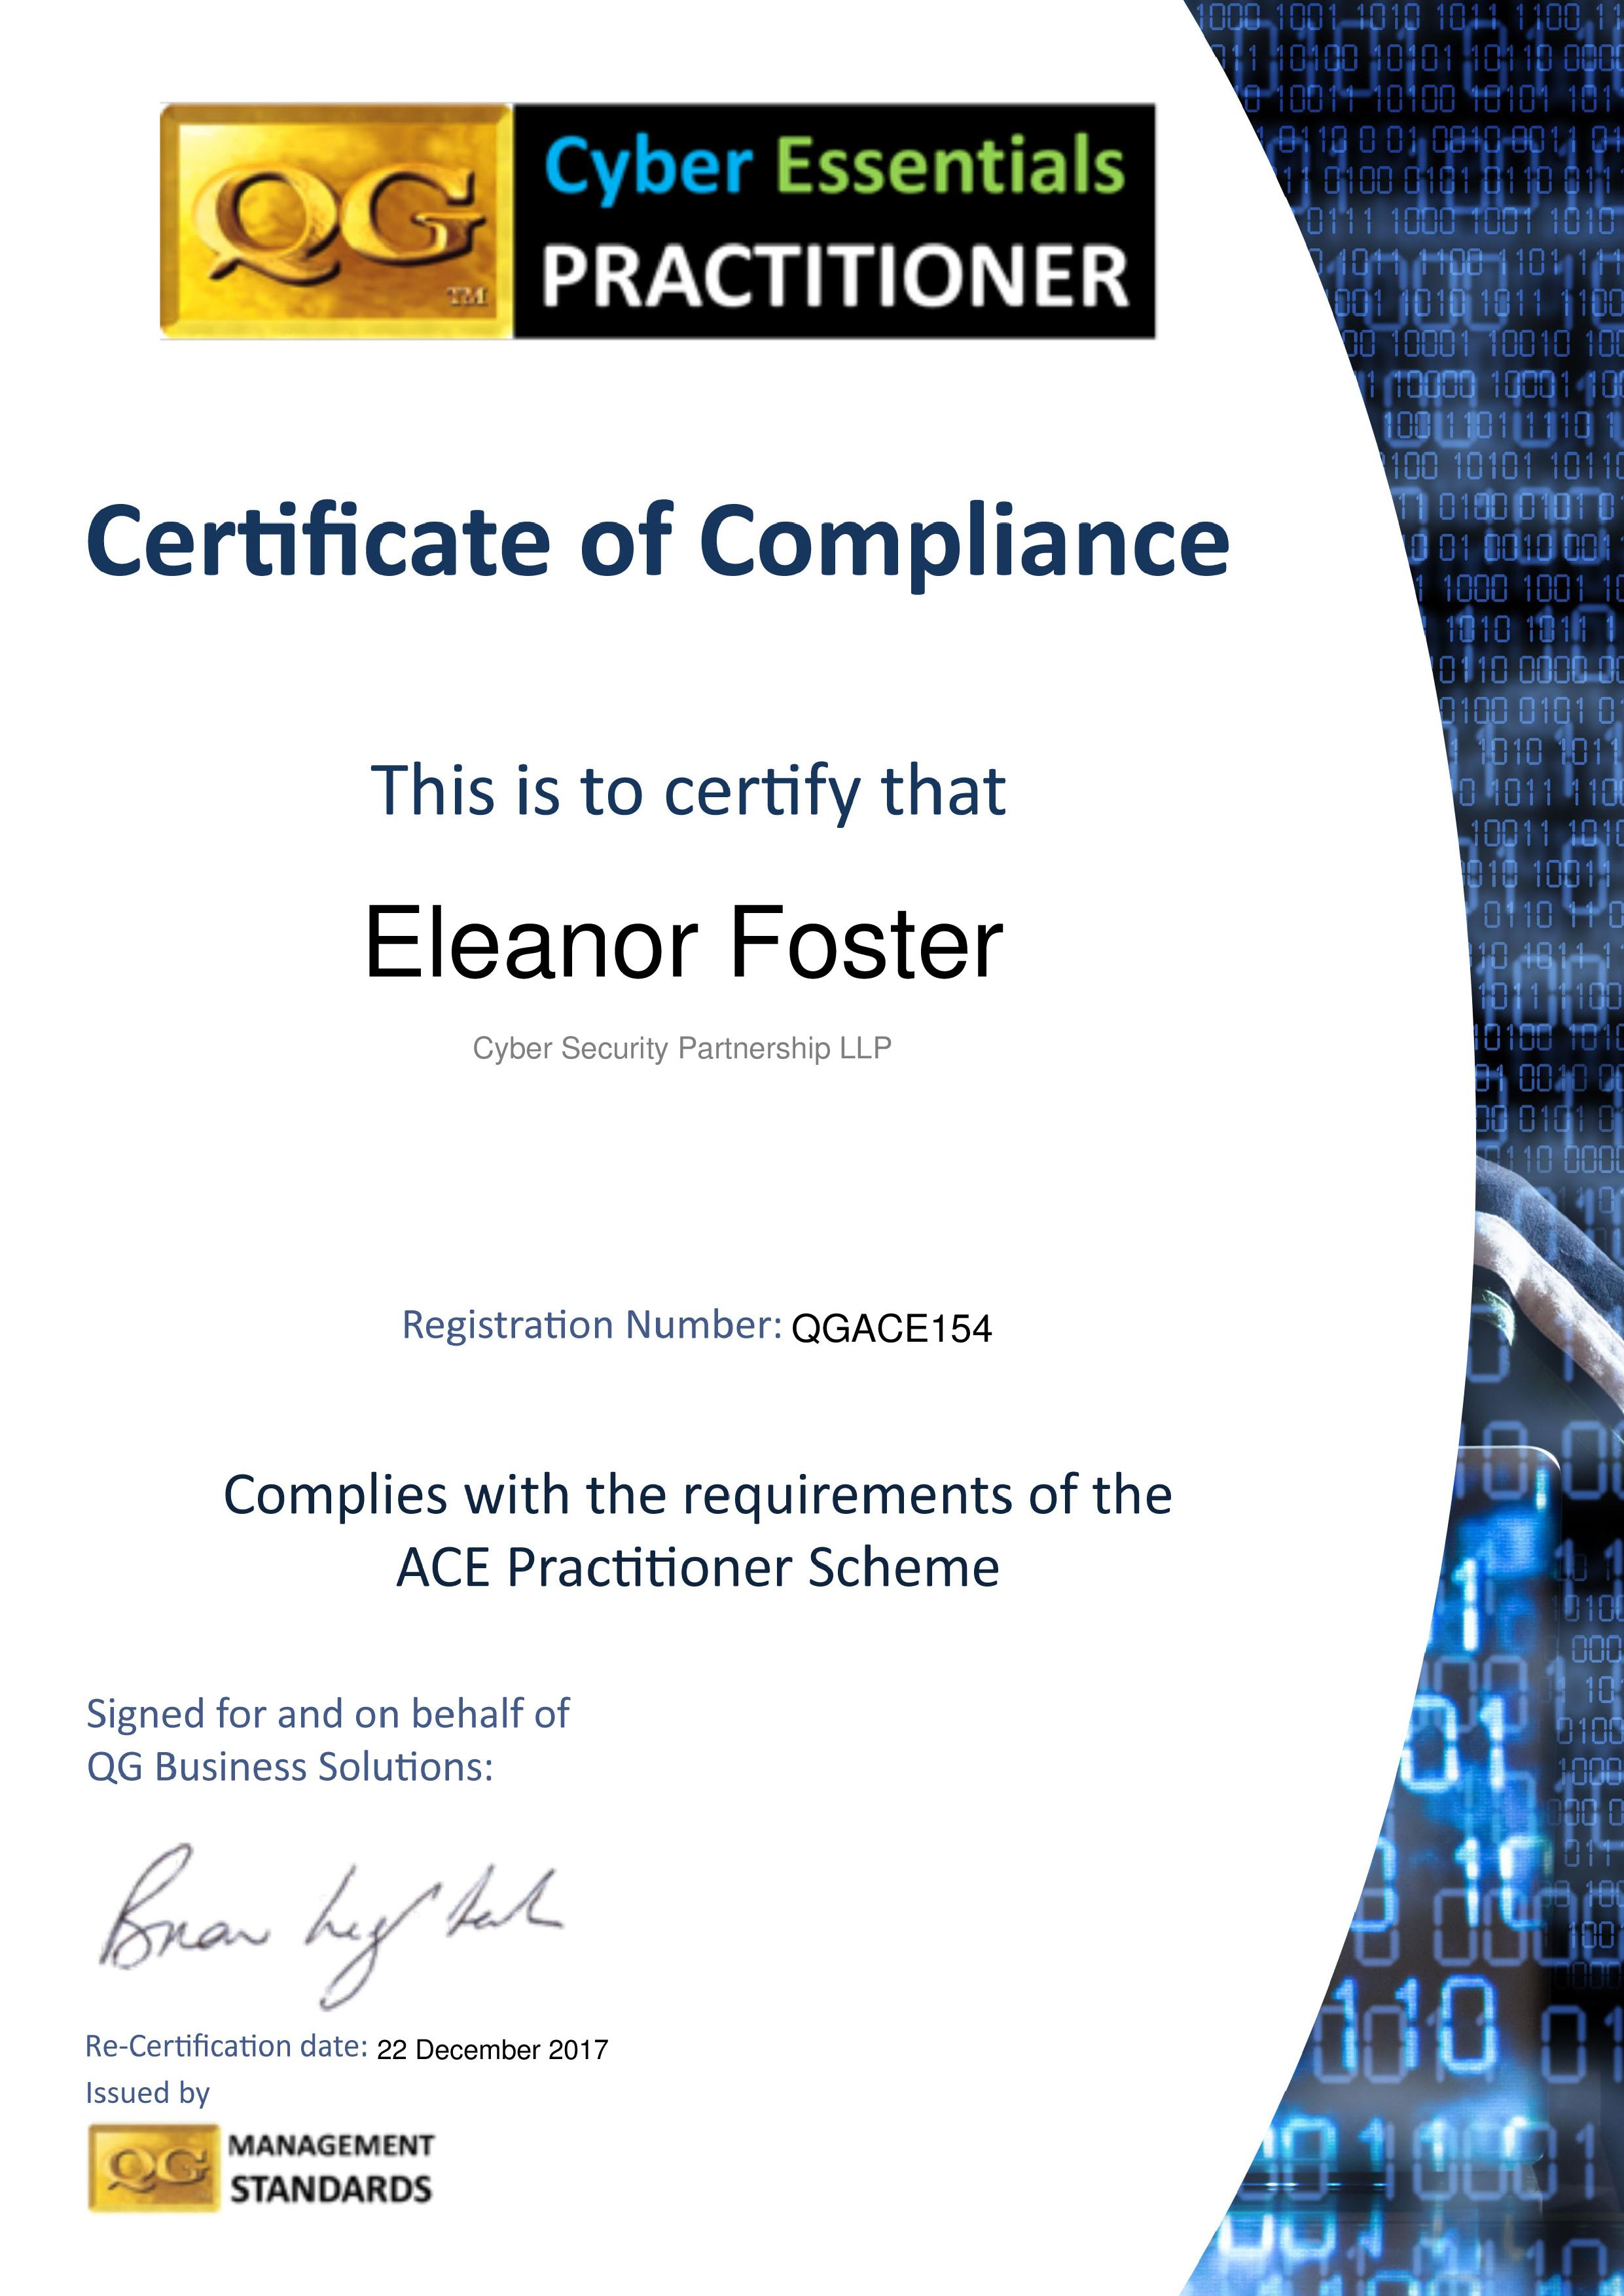 QGACE154 Cyber Security Partnership LLP